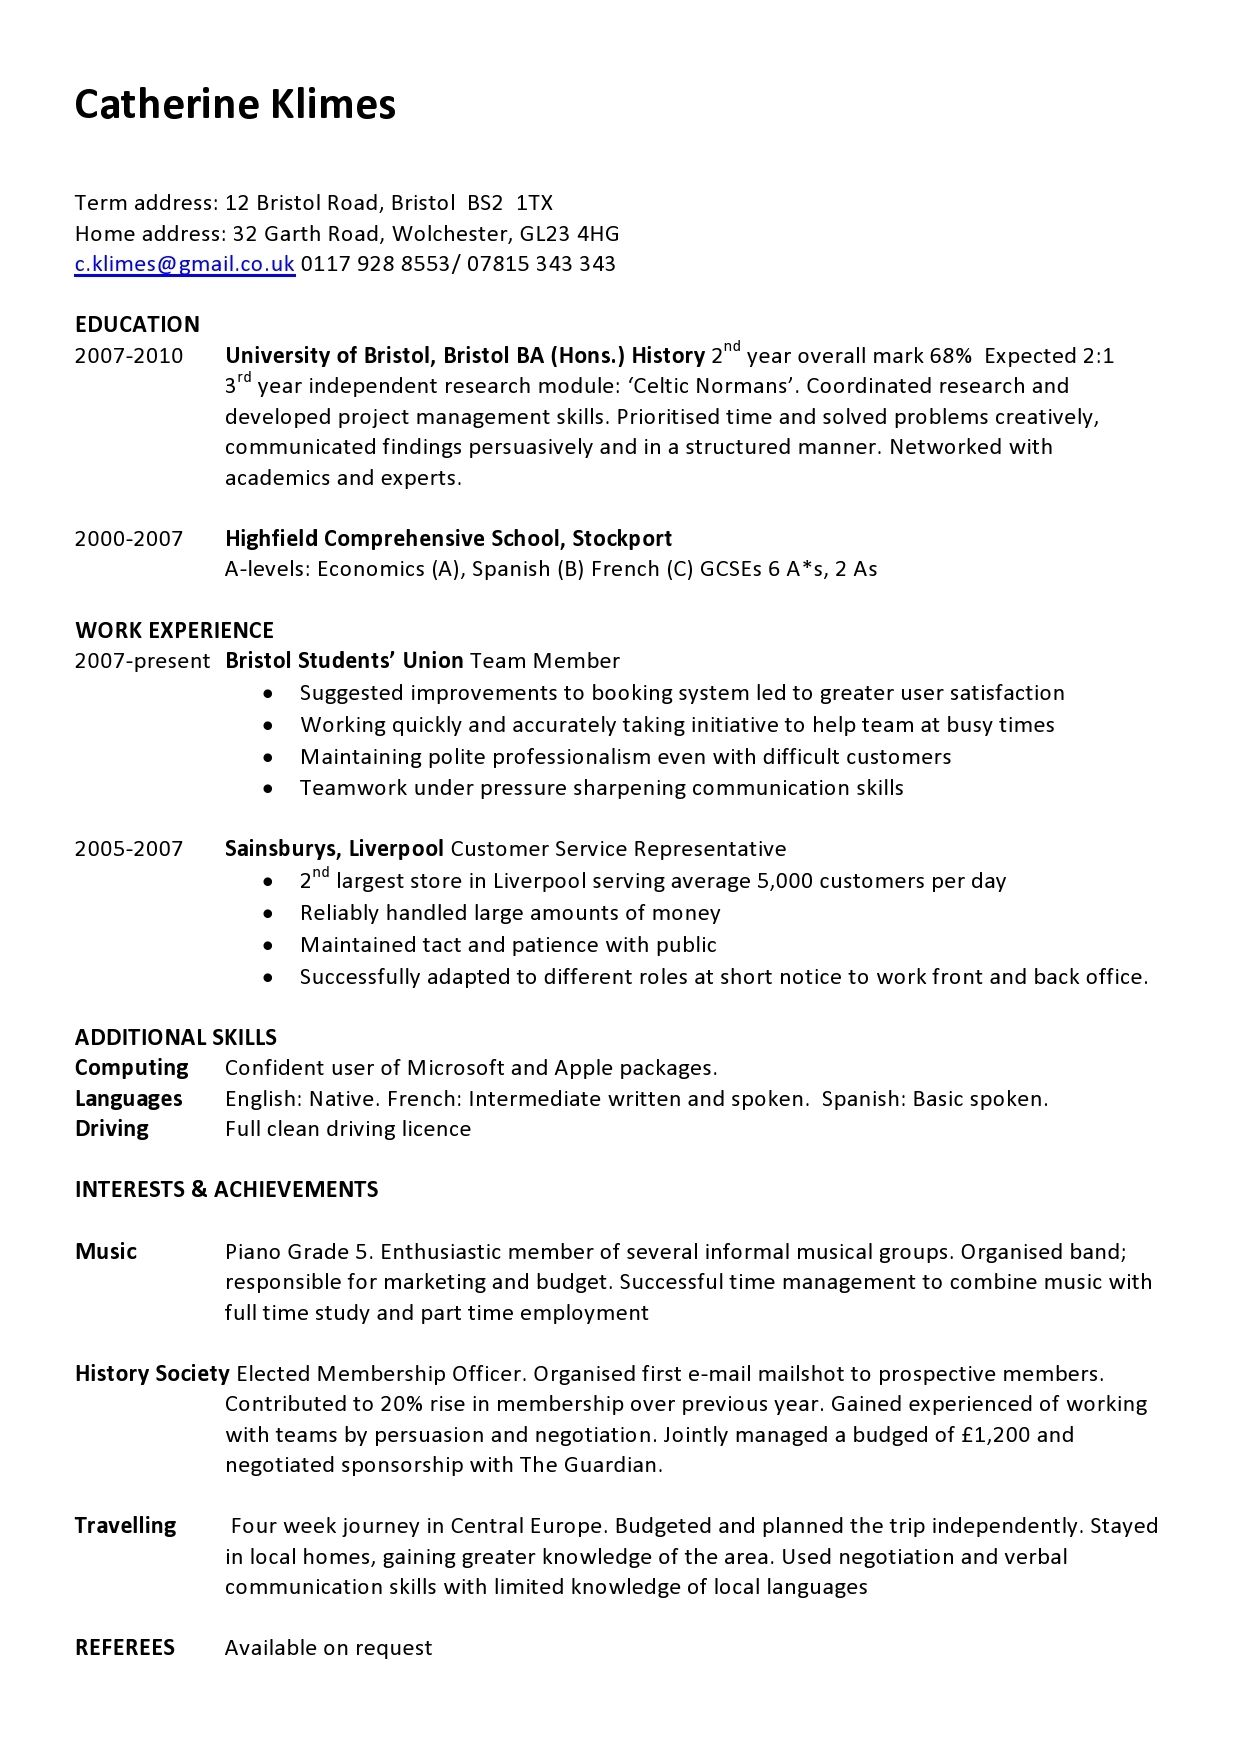 example of a one page cv